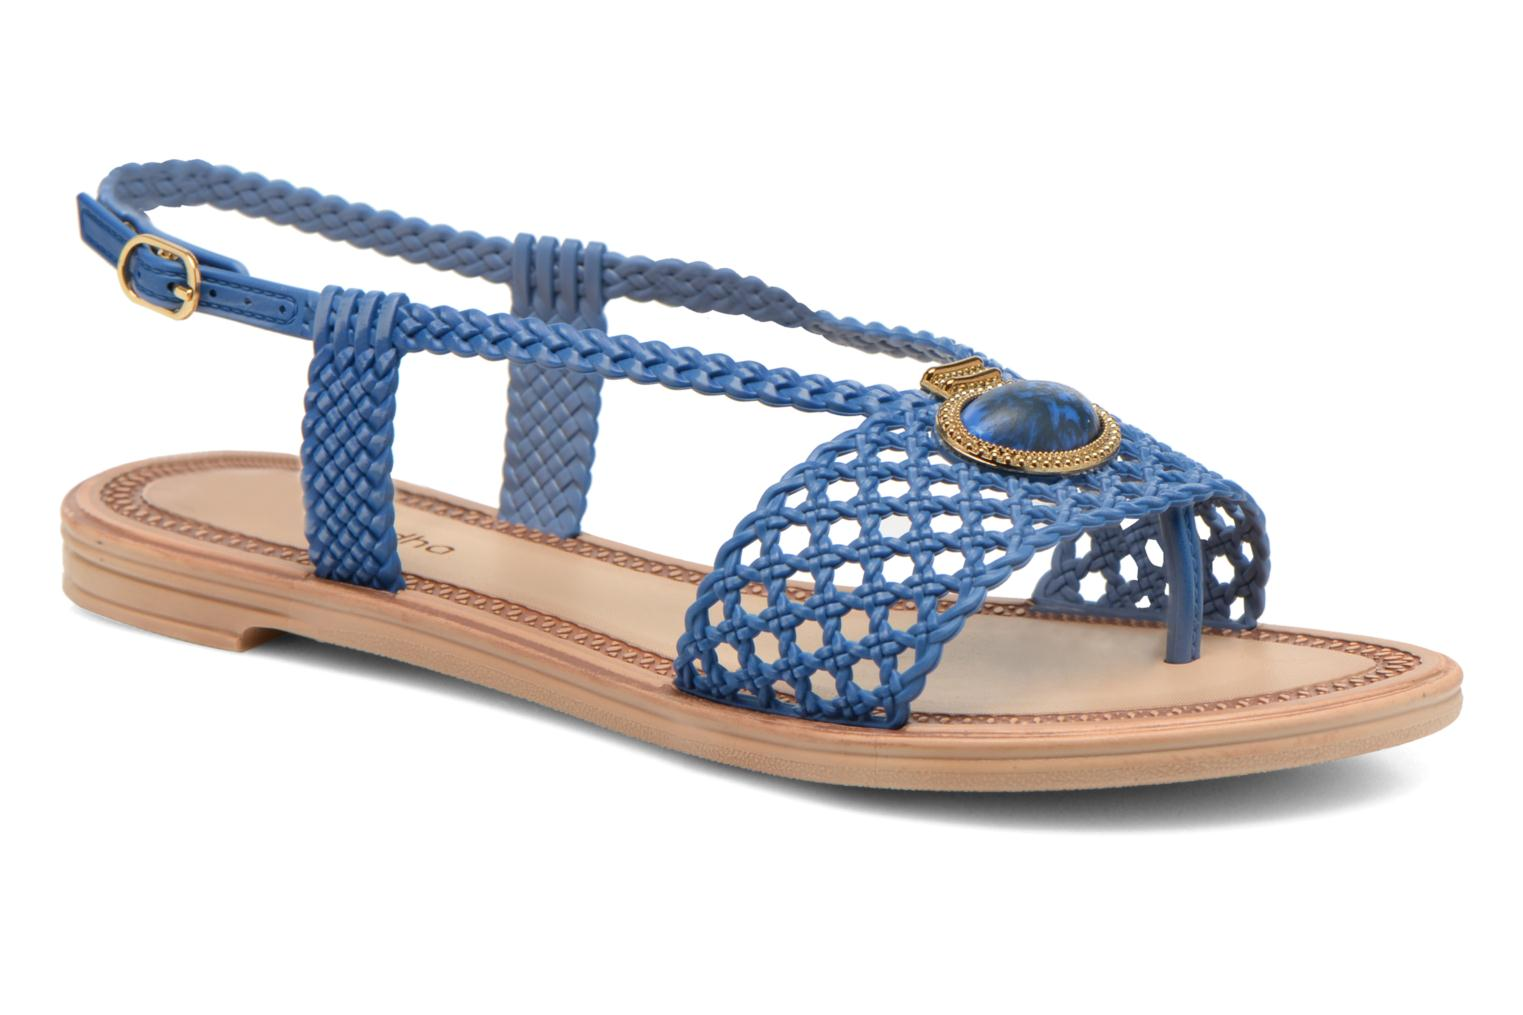 Tribale IV Sandal by Grendha